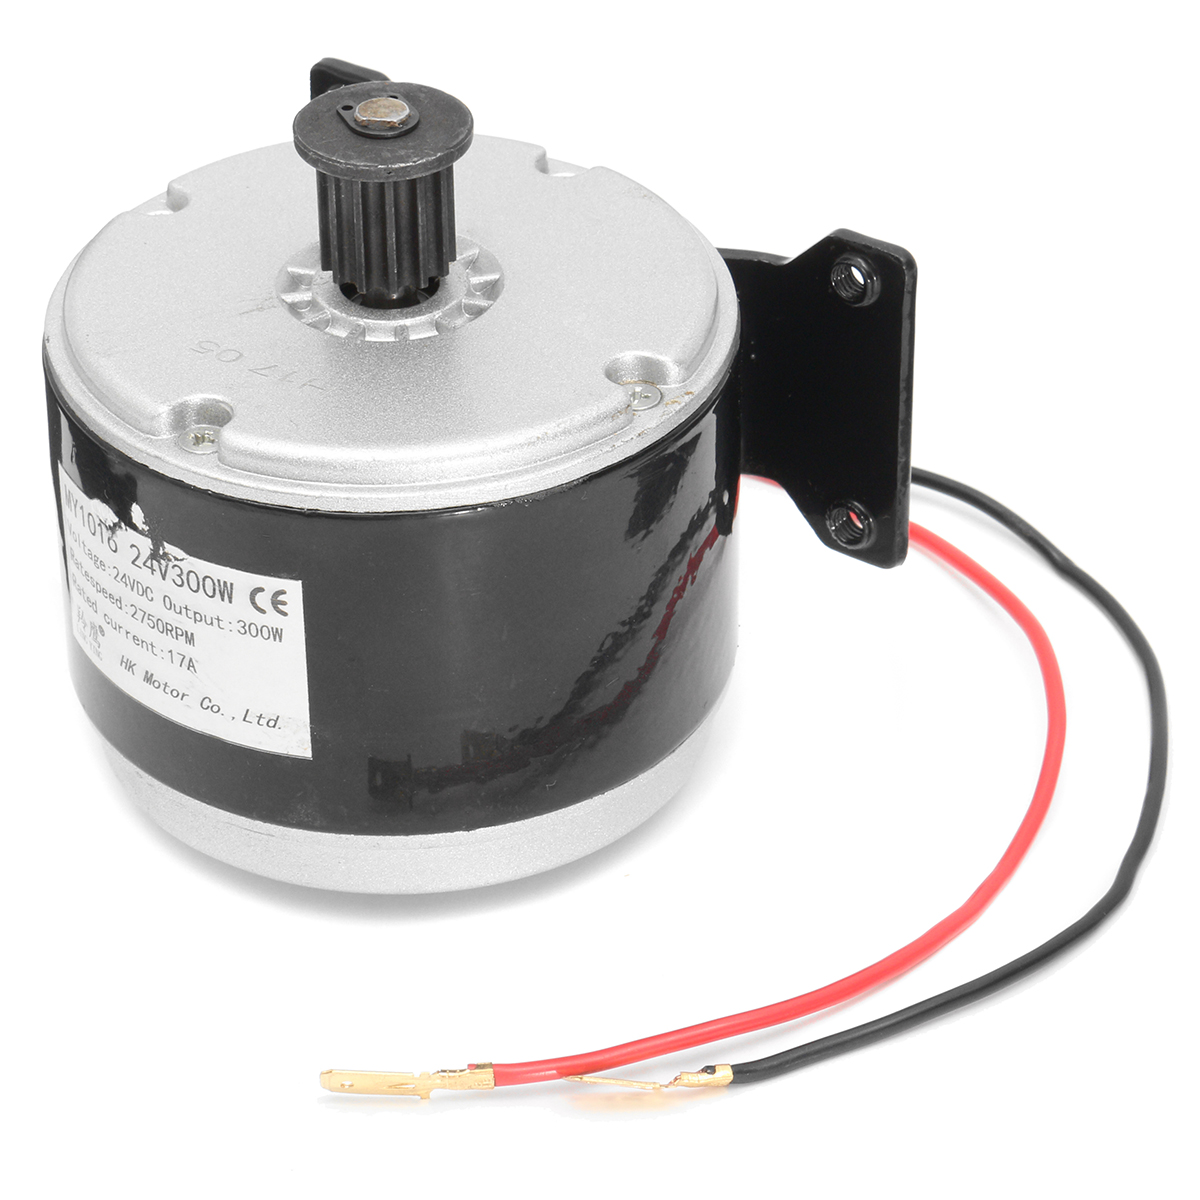 24V DC Electric Motor Brushed 300W 2750RPM 2 Wired Chain Fits E Bike ...